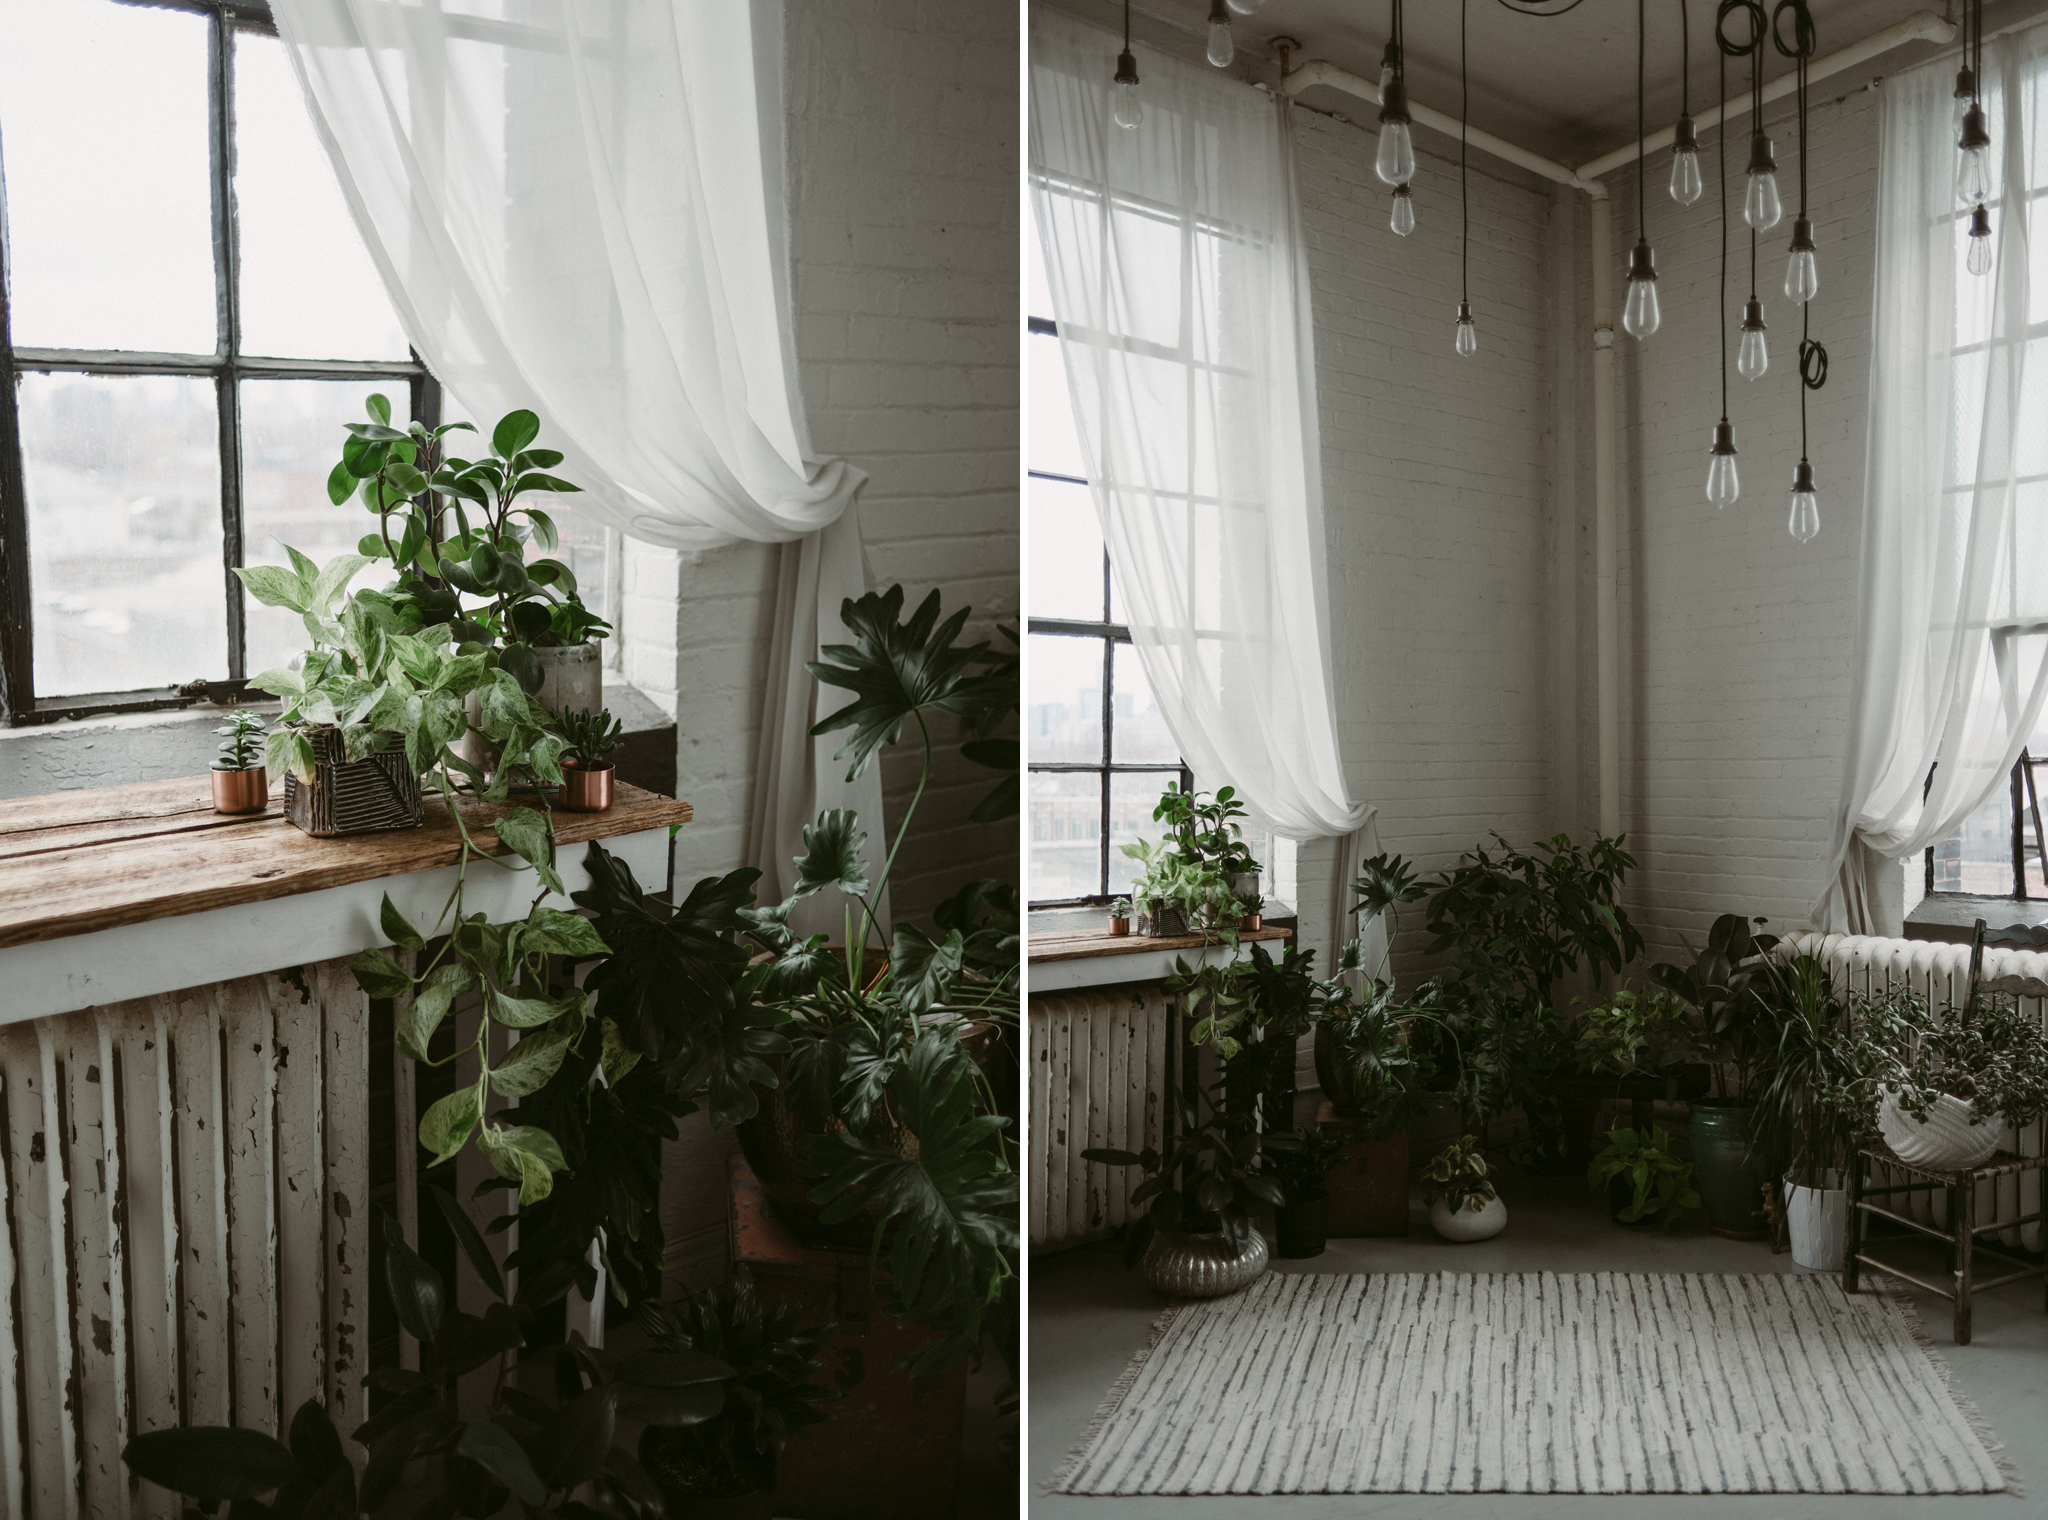 Plants and white brick walls in trendy loft with large windows